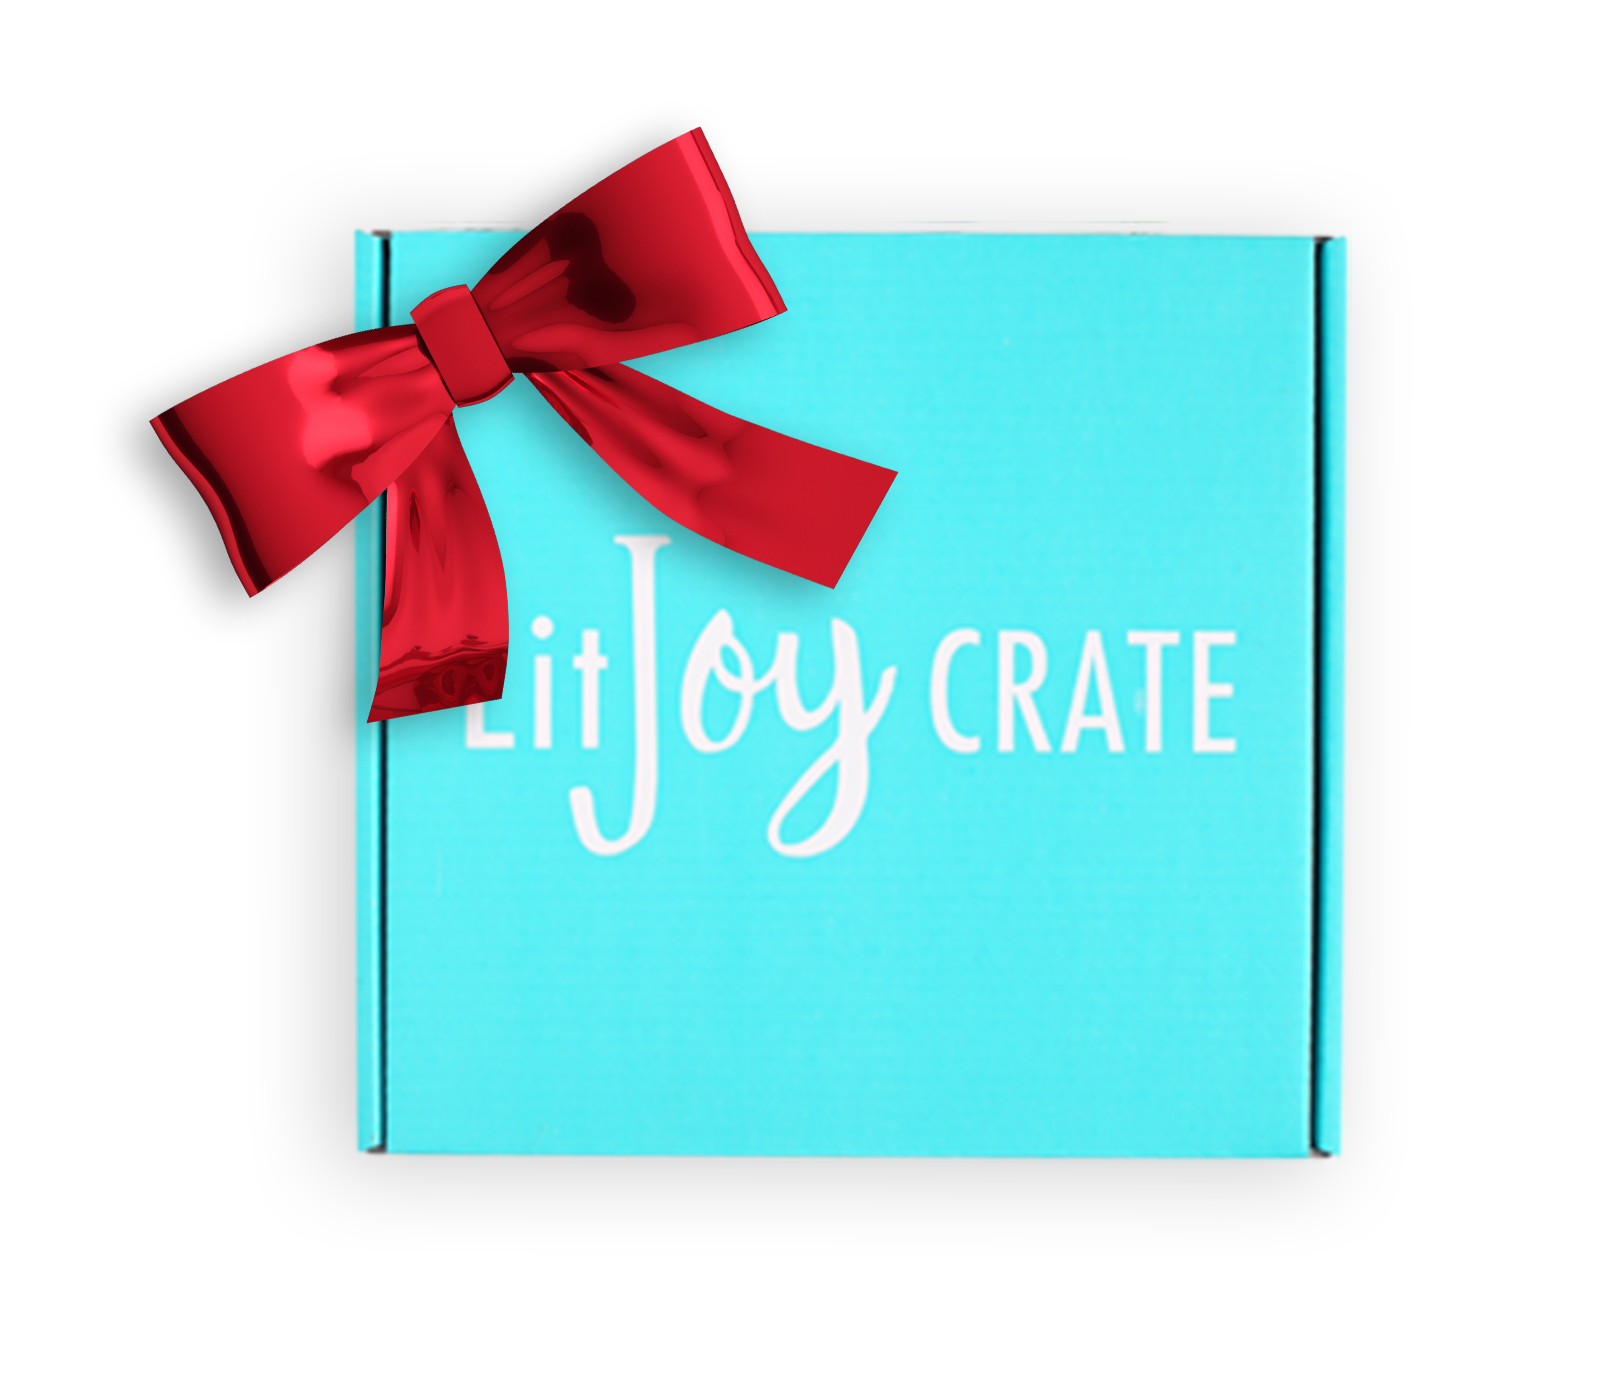 LitJoy Crate Holiday Gifts